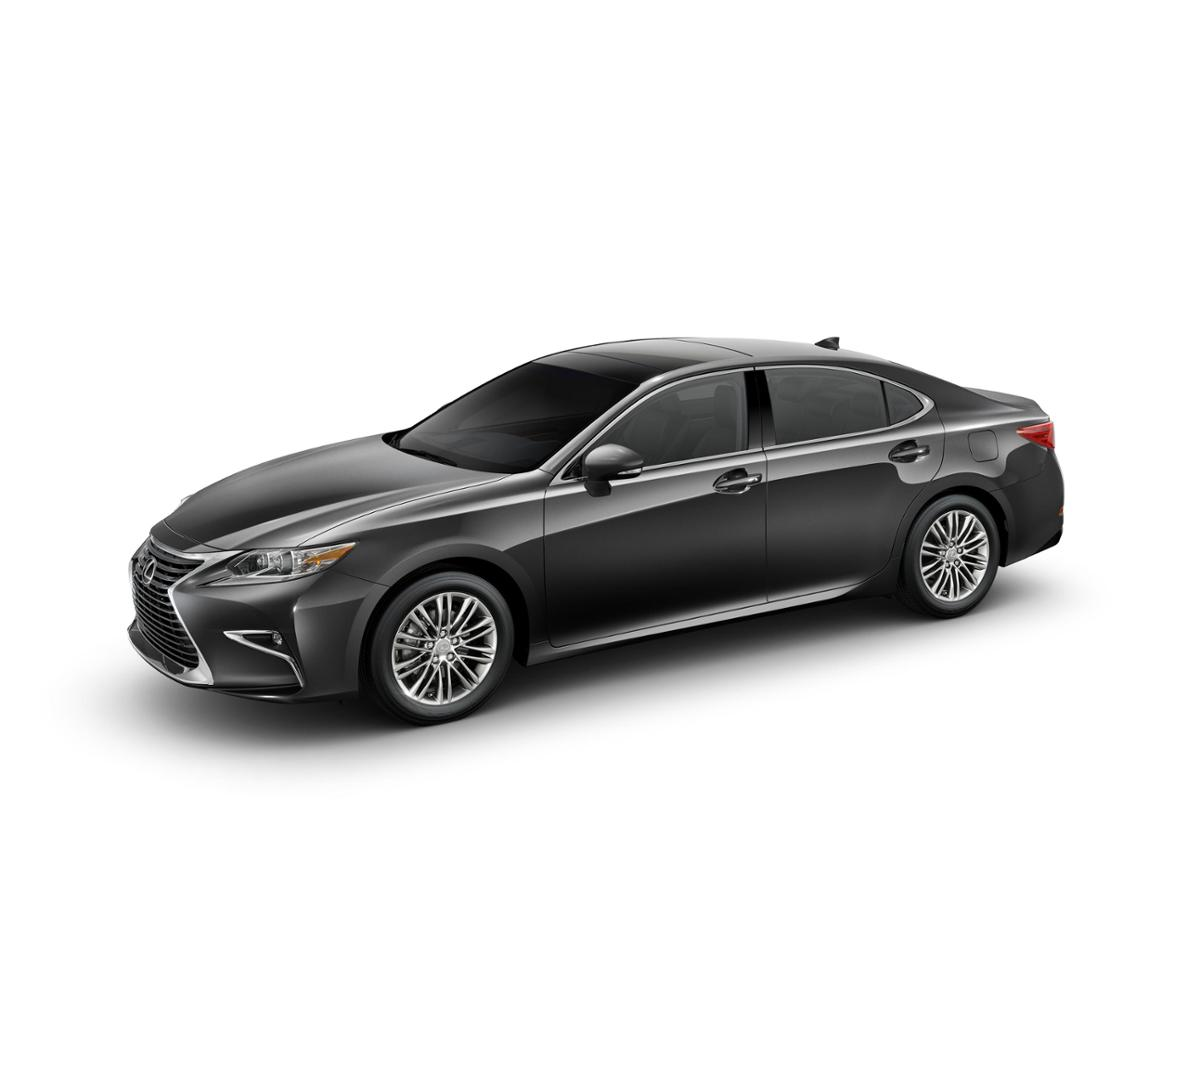 2018 lexus es 350 in nebula gray pearl for sale in lakeway. Black Bedroom Furniture Sets. Home Design Ideas